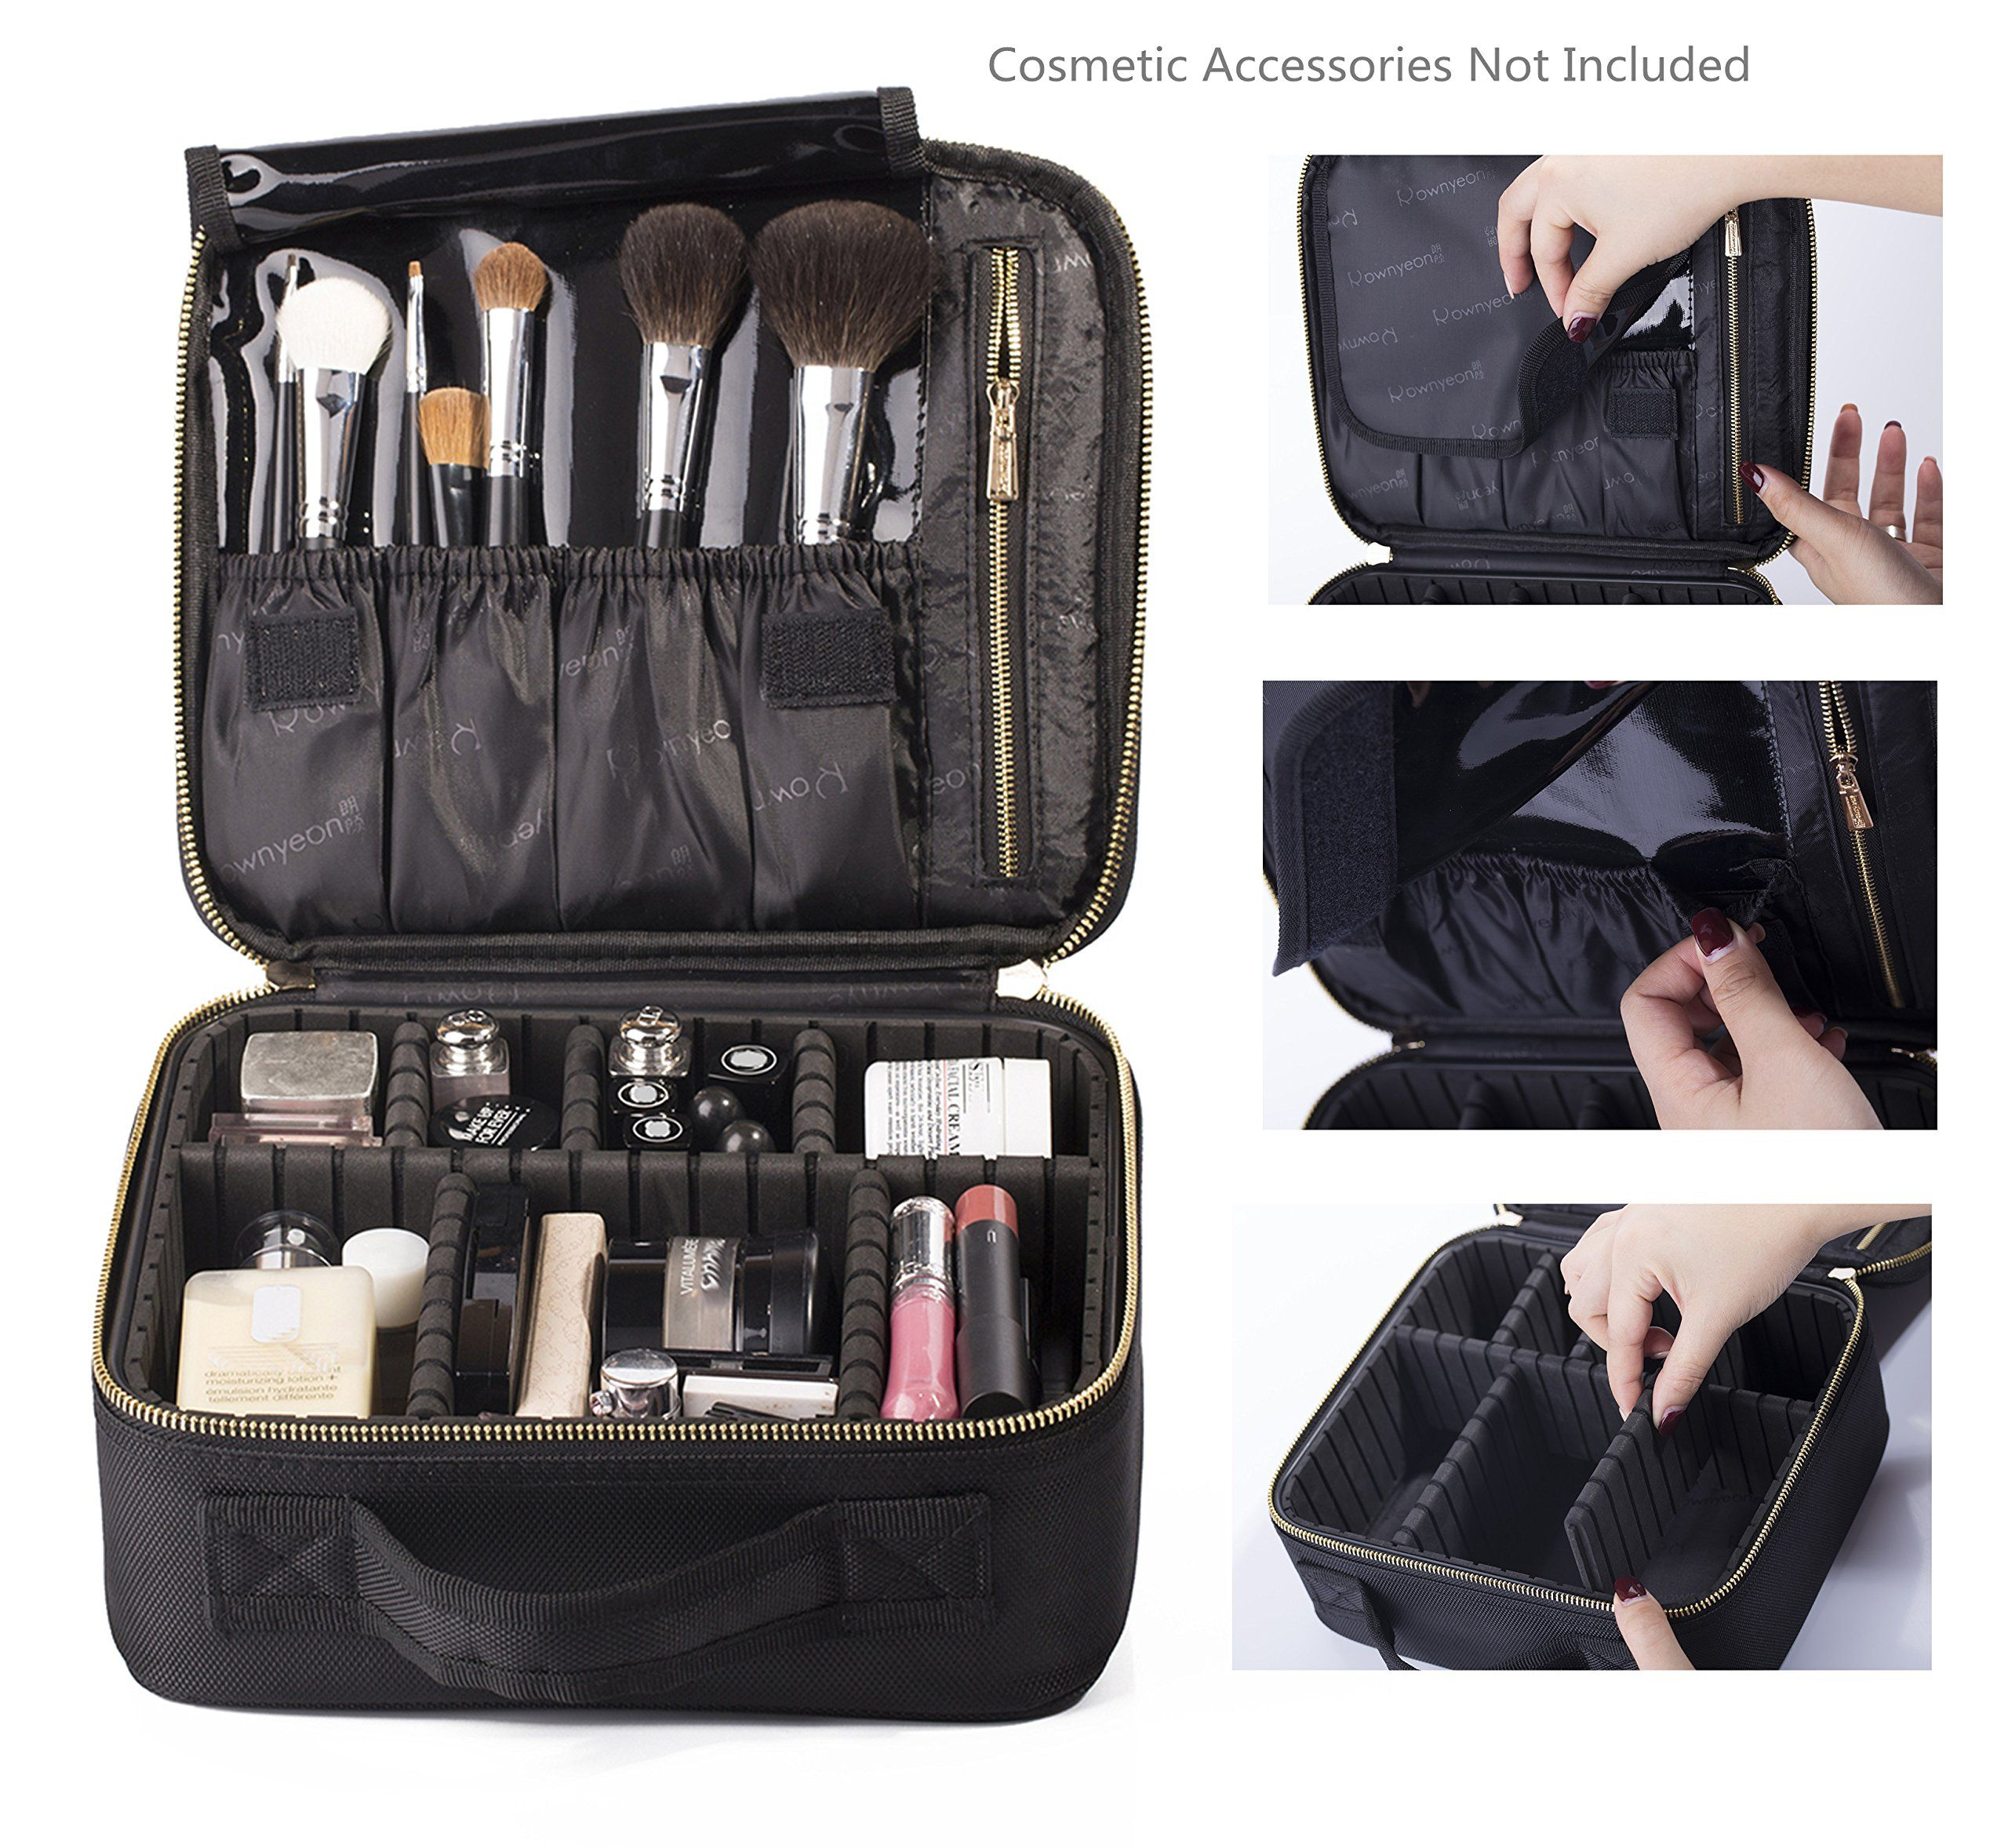 c3f06bb3bee482 ROWNYEON Mini Makeup Train Case/Travel Makeup Case/Makeup Organizer Bag  with Portable EVA and freely combined